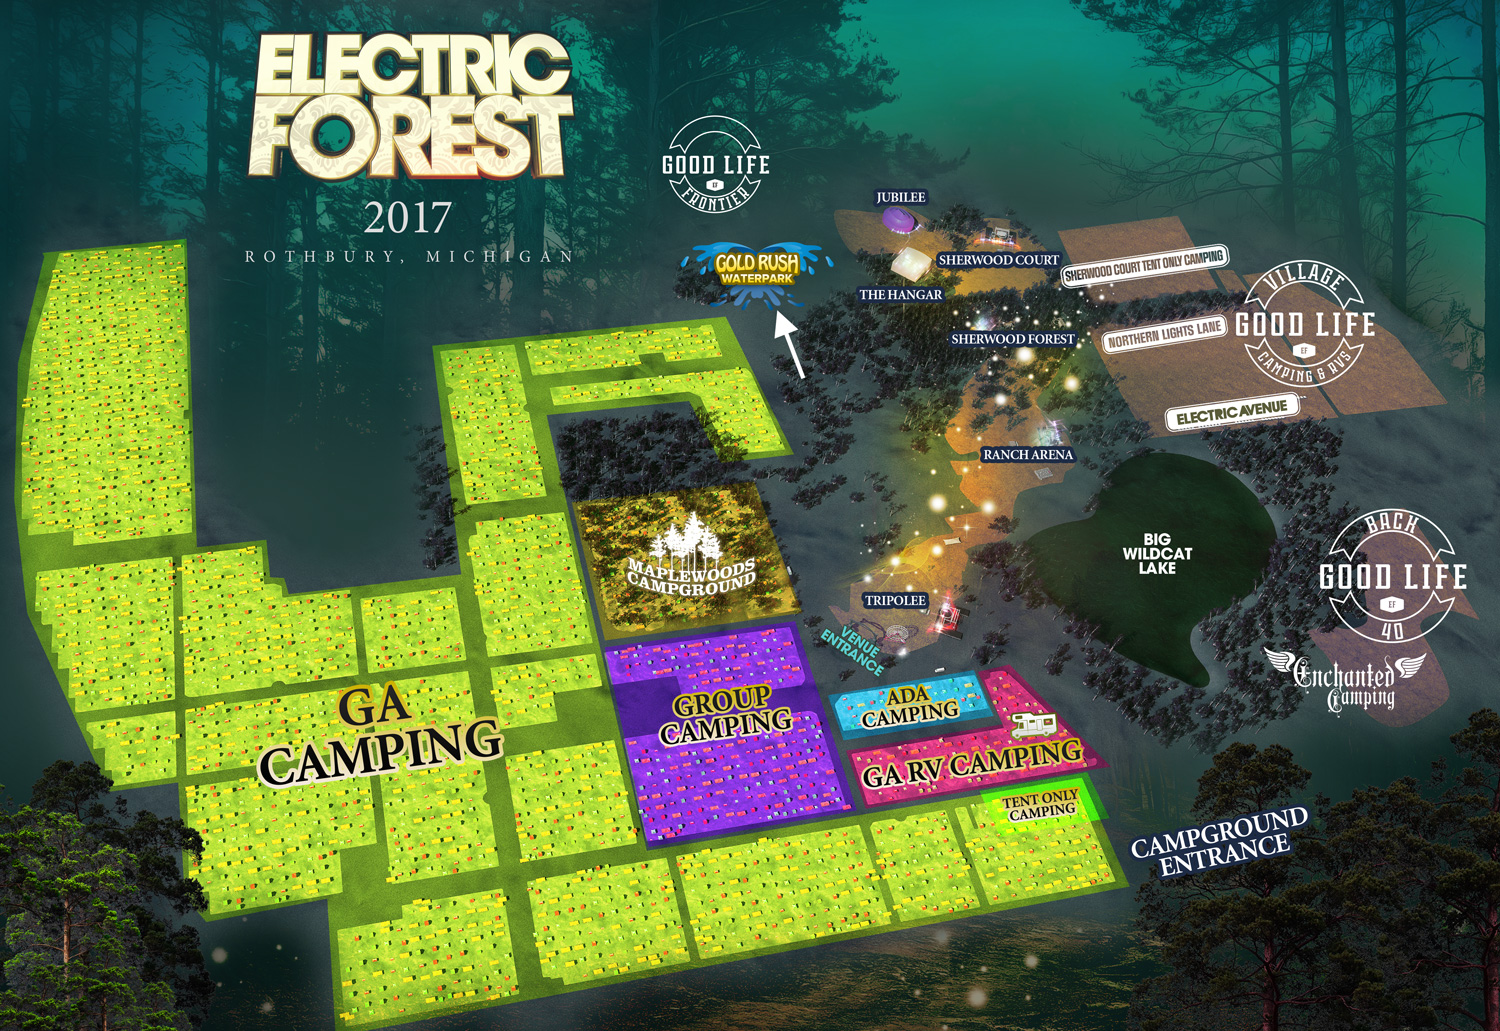 Electric Forest Map Electric Forest 2017 Lodging Map | EDM Identity